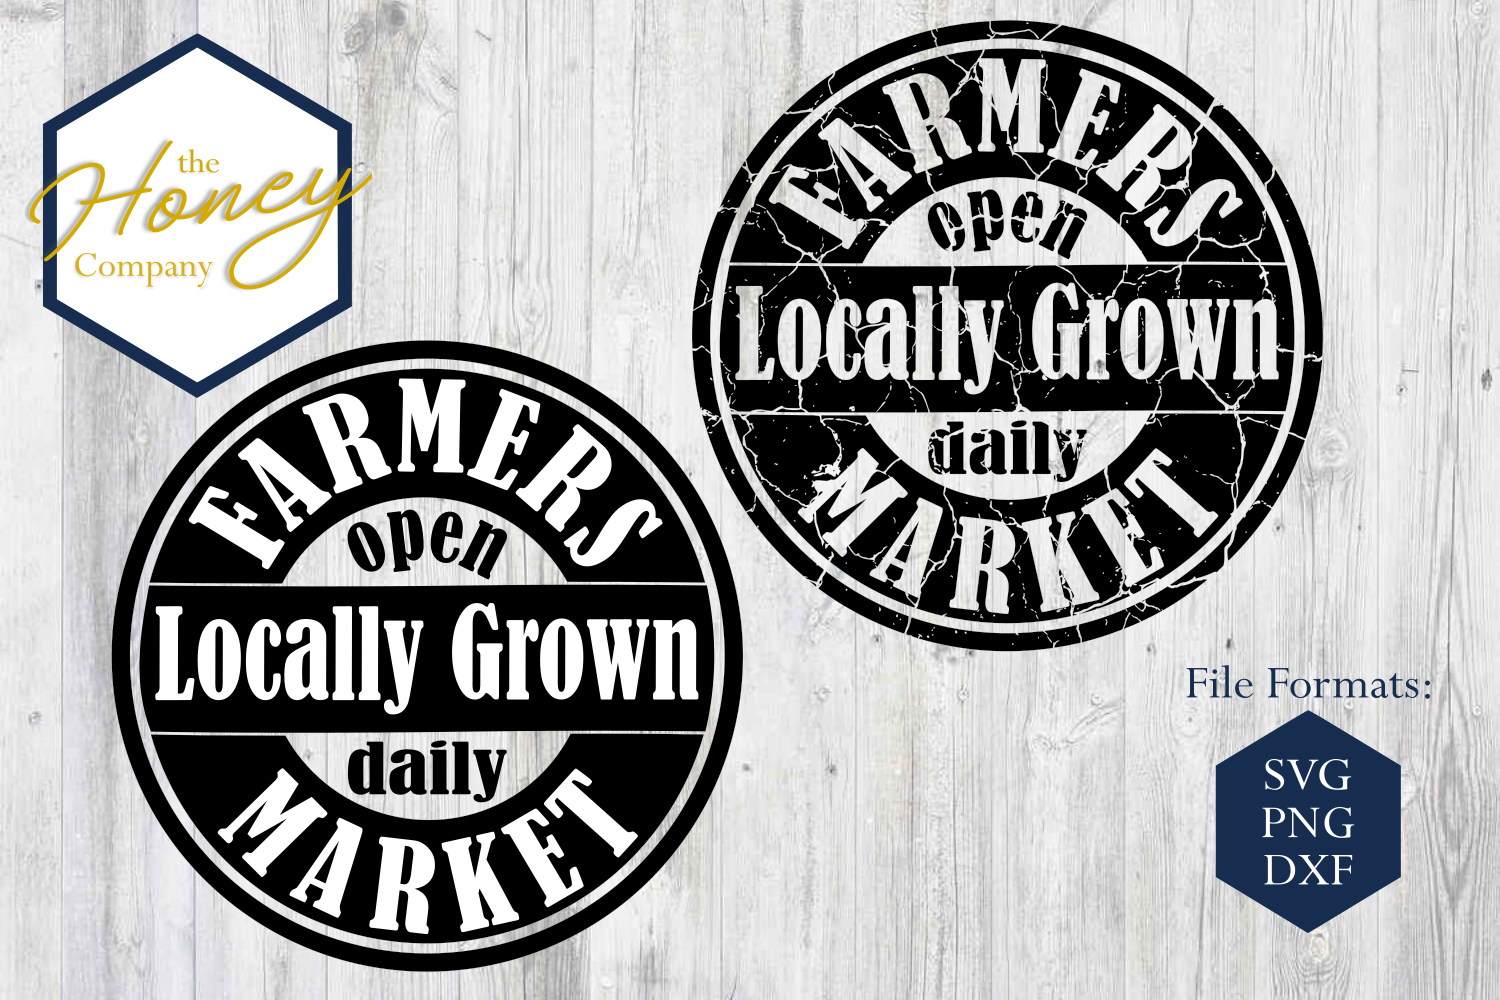 Download Free Farmers Market Graphic By The Honey Company Creative Fabrica for Cricut Explore, Silhouette and other cutting machines.